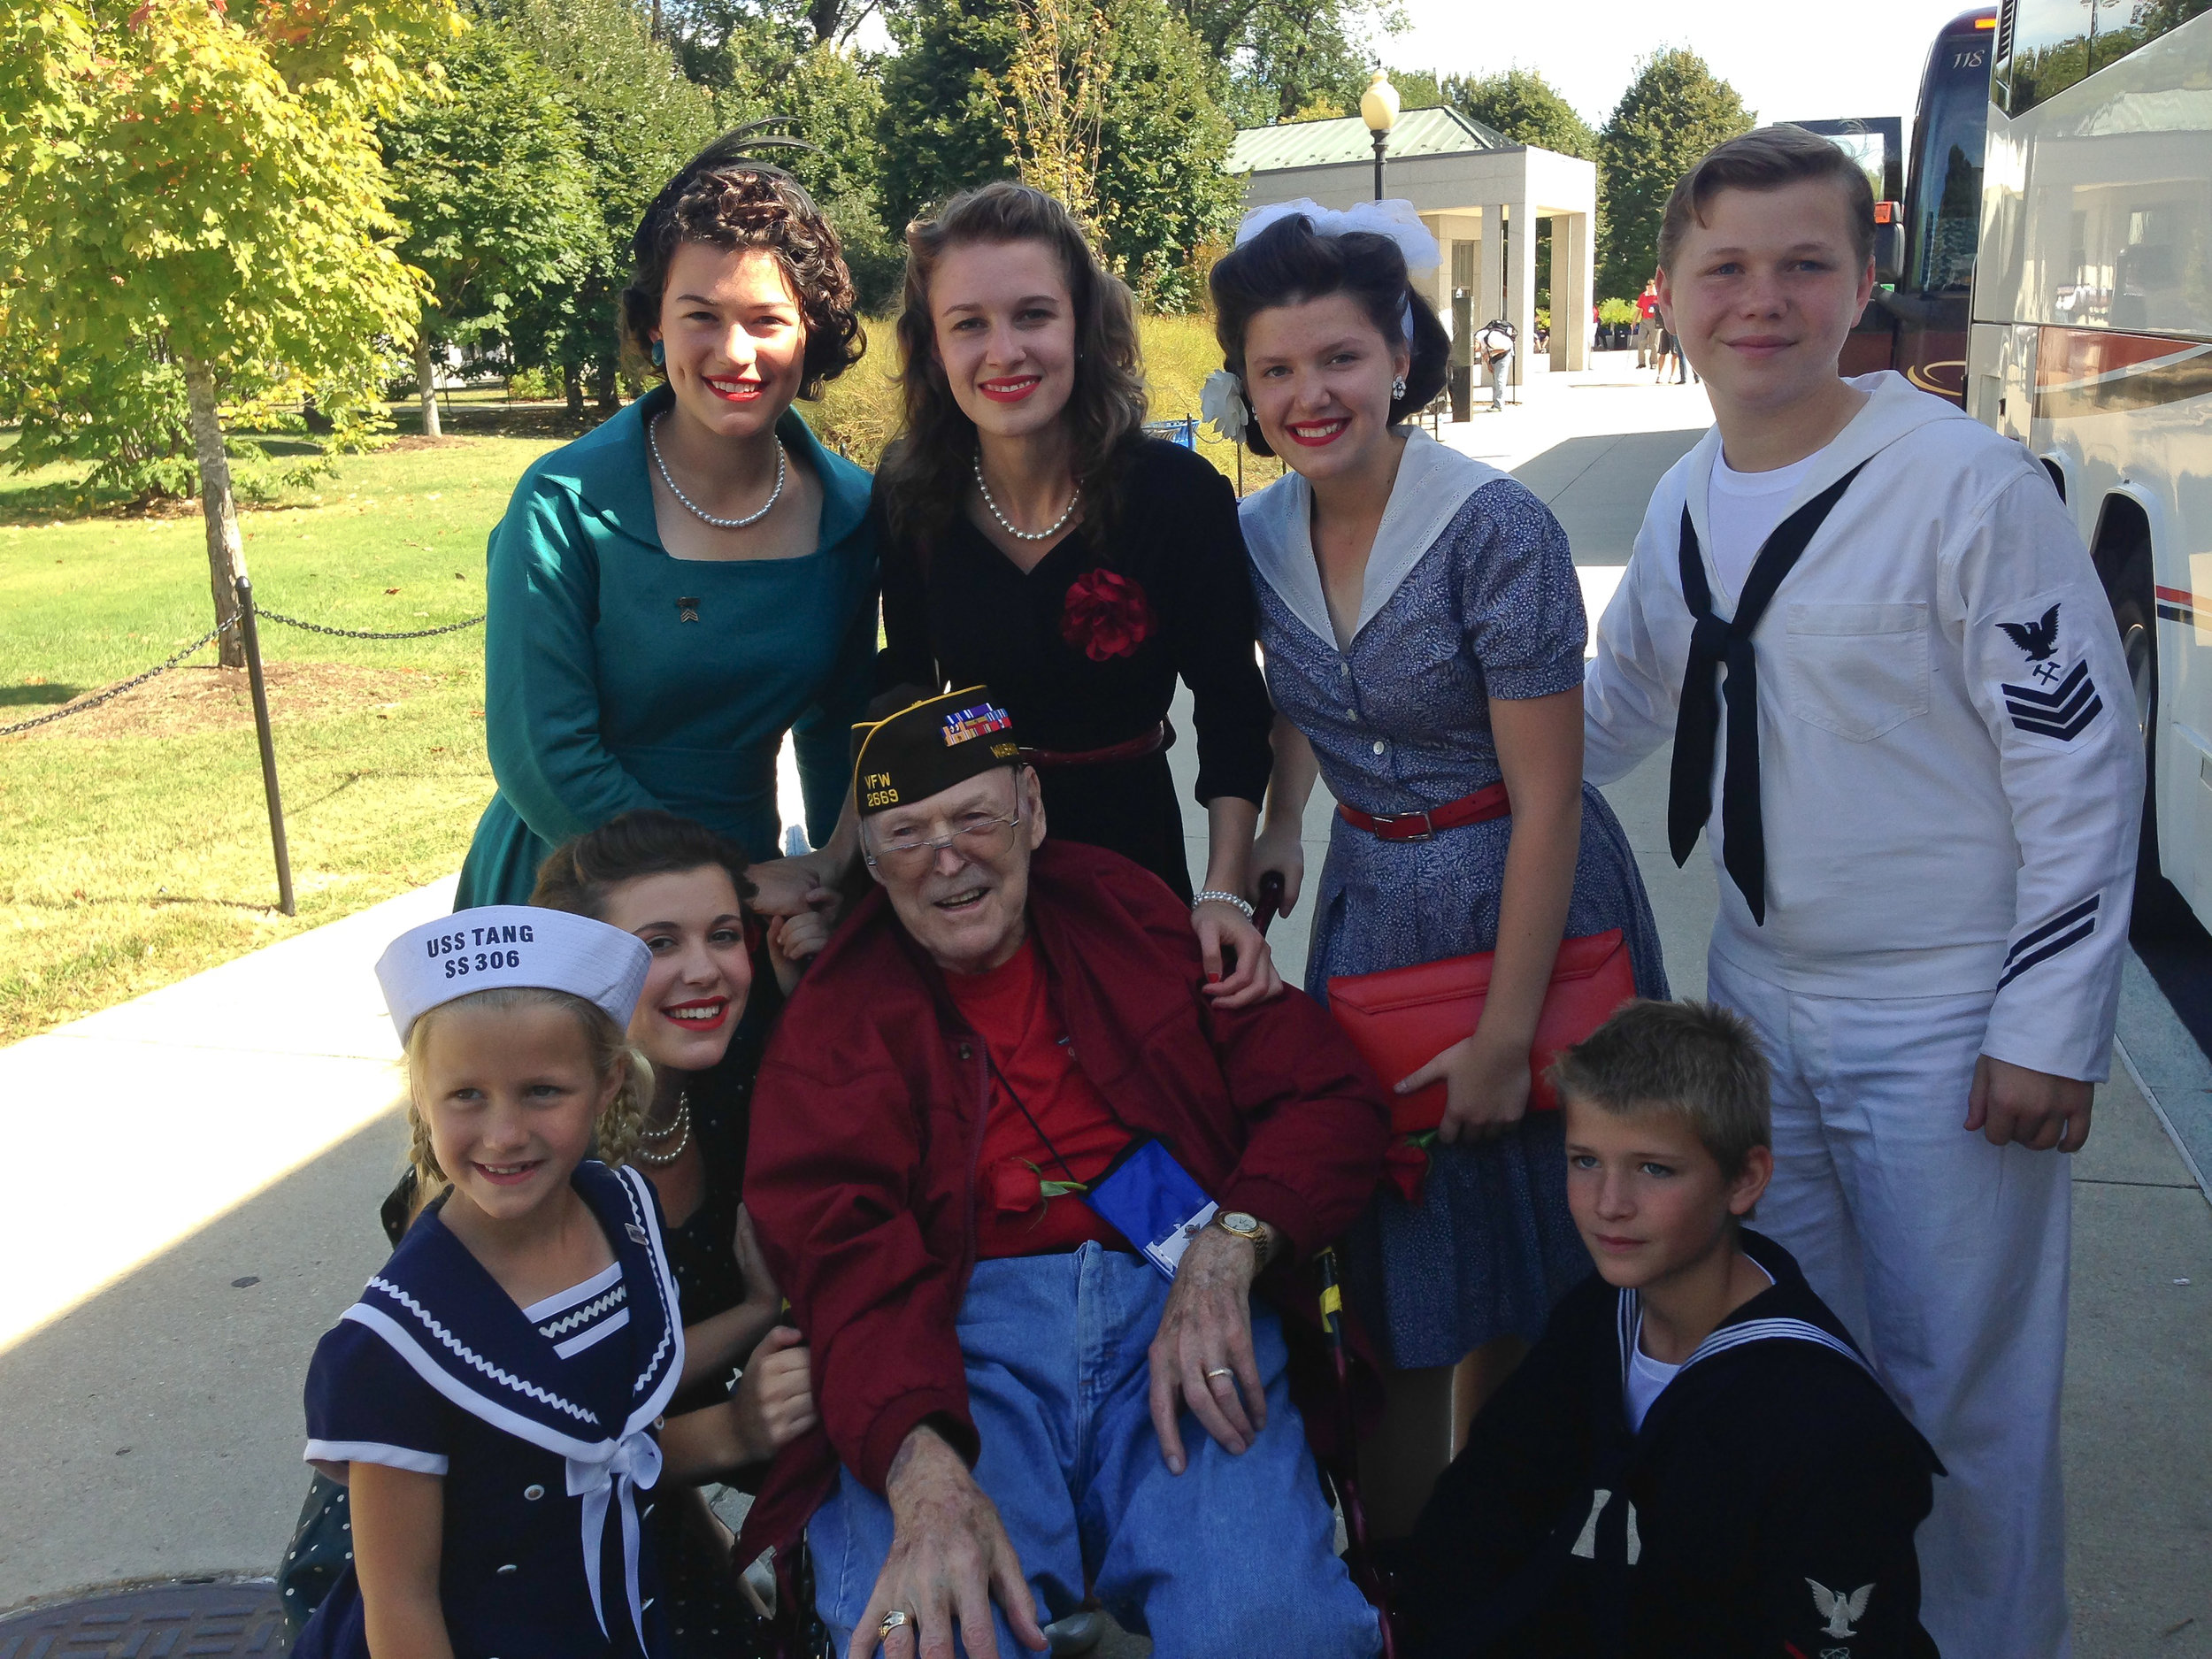 Donald Eugene McGuirk  July 19, 1924 - October 4, 2016  Navy Air Corps - WWII -  B-24 Liberator